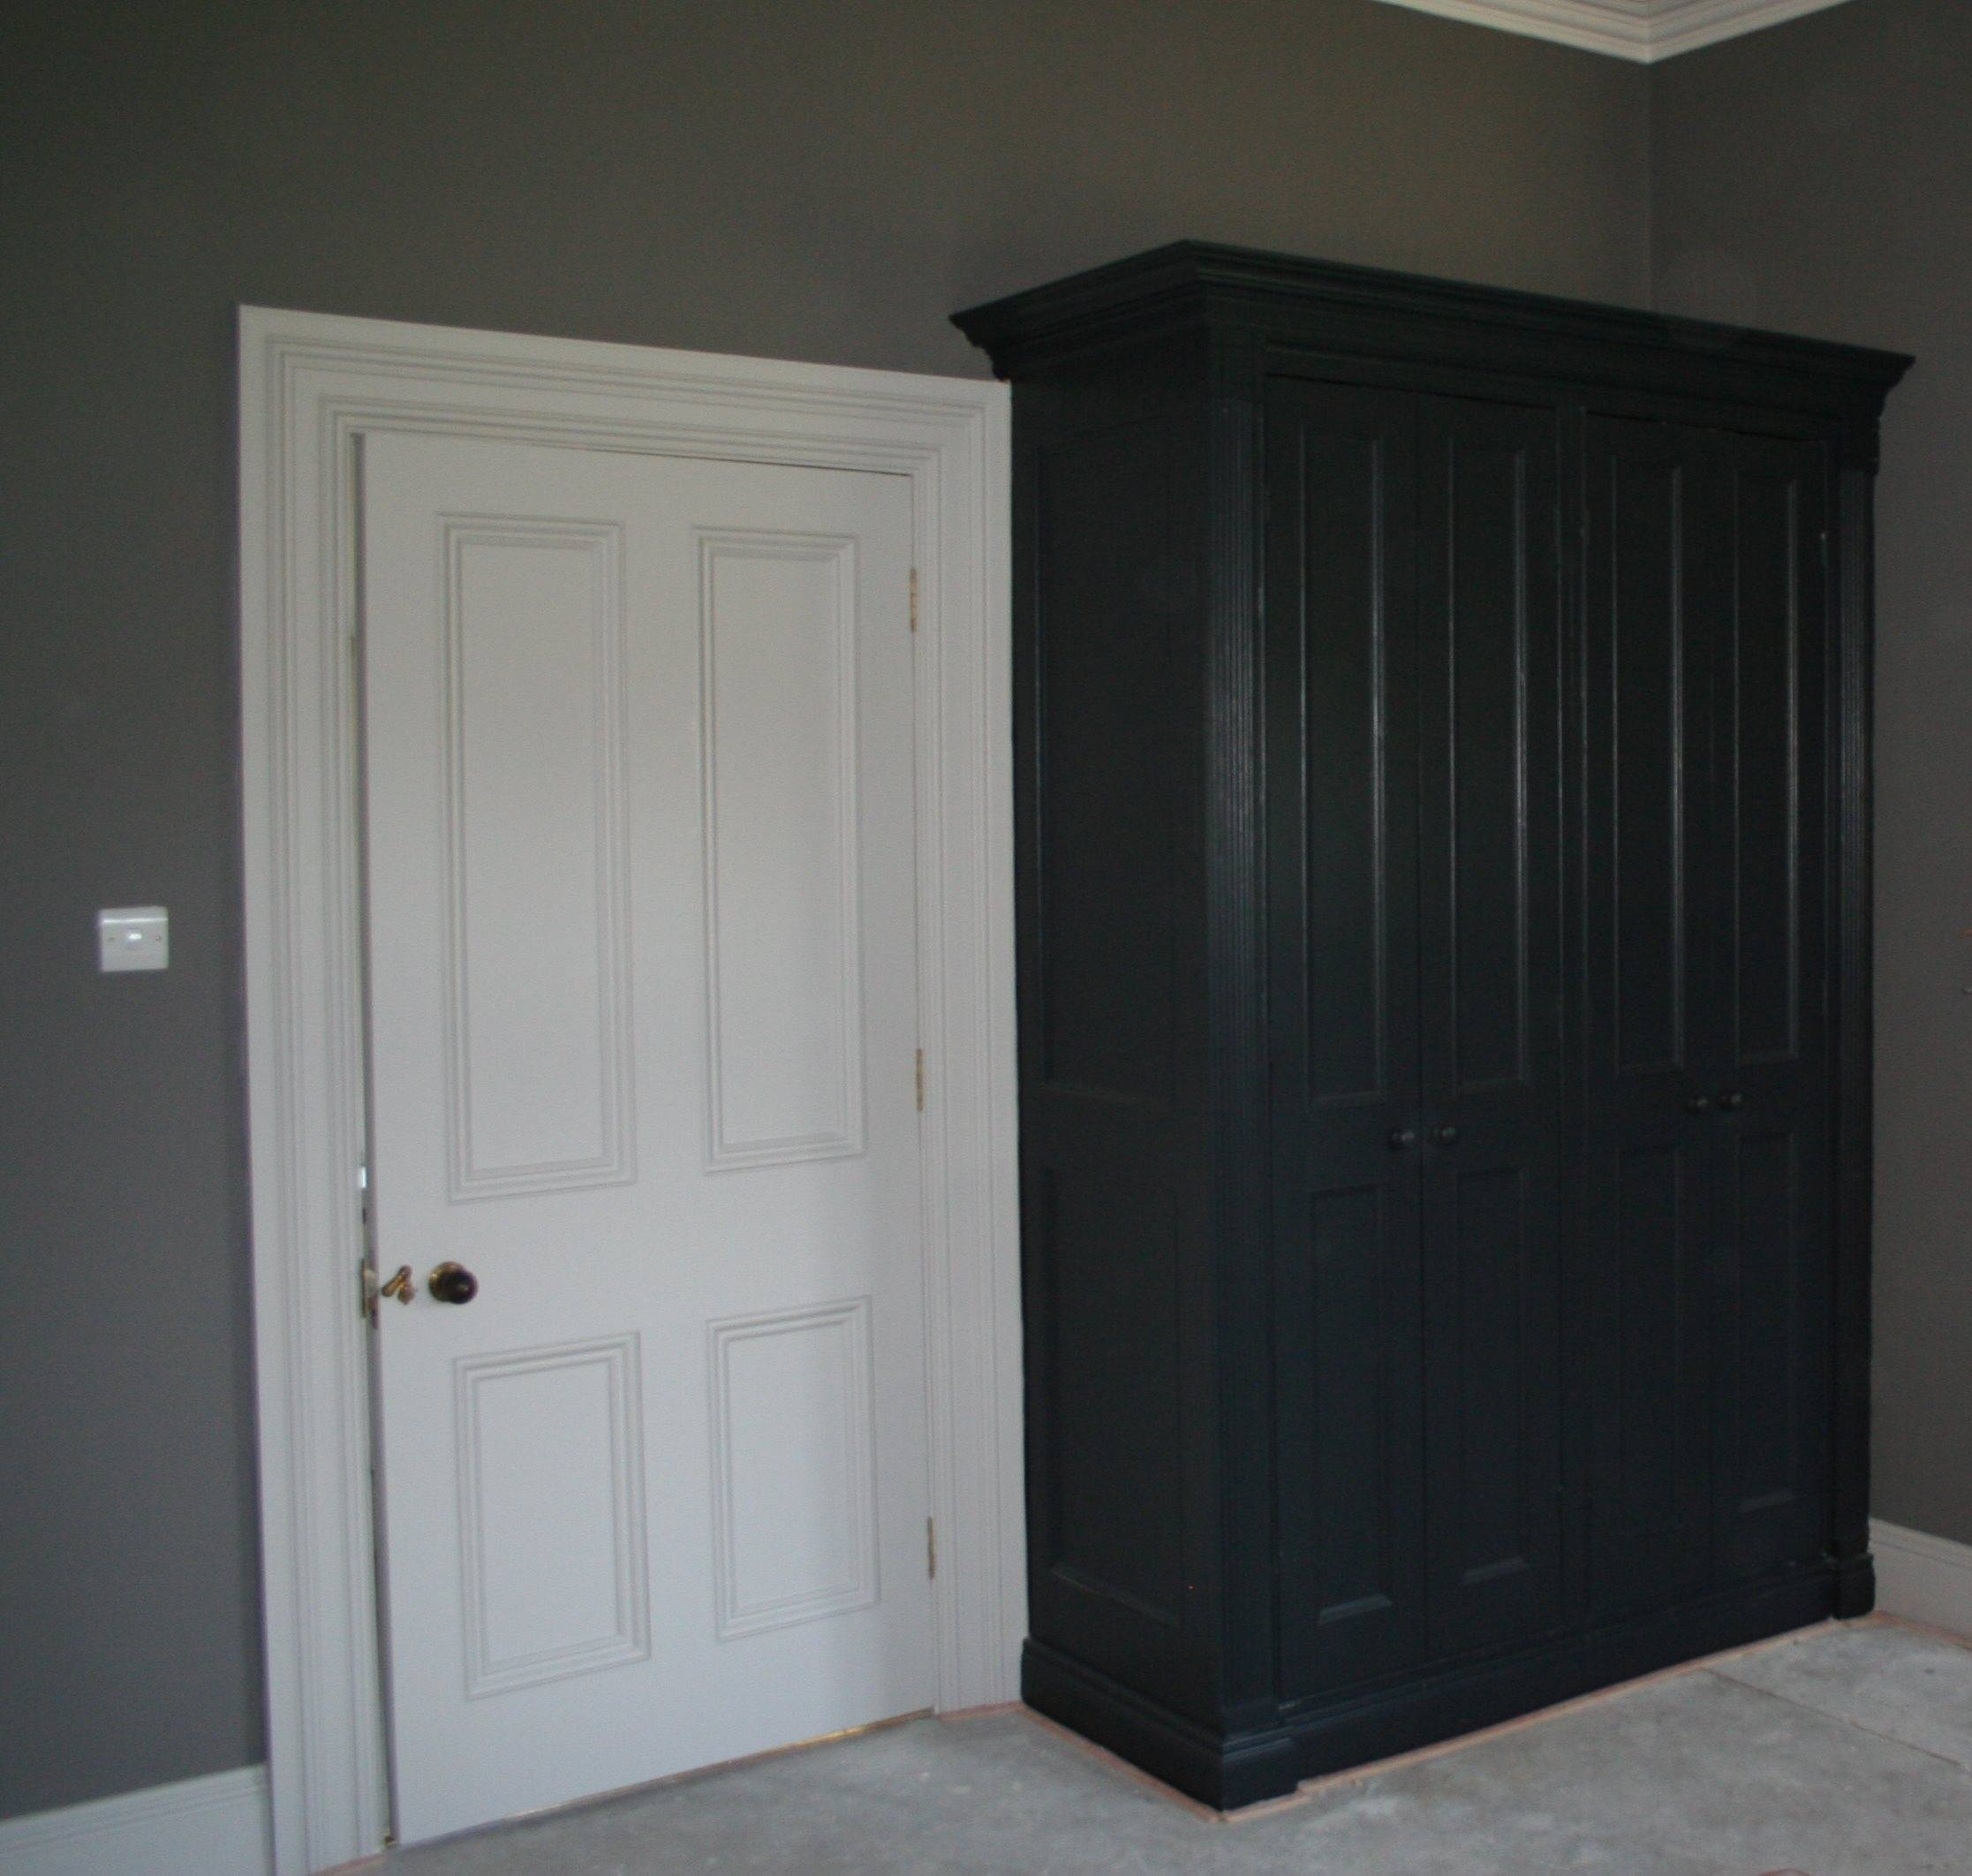 Bed Room Furniture Painting, Bespoke Furniture Painting with Farrow and Ball Painted Wardrobes (Image 1 of 15)